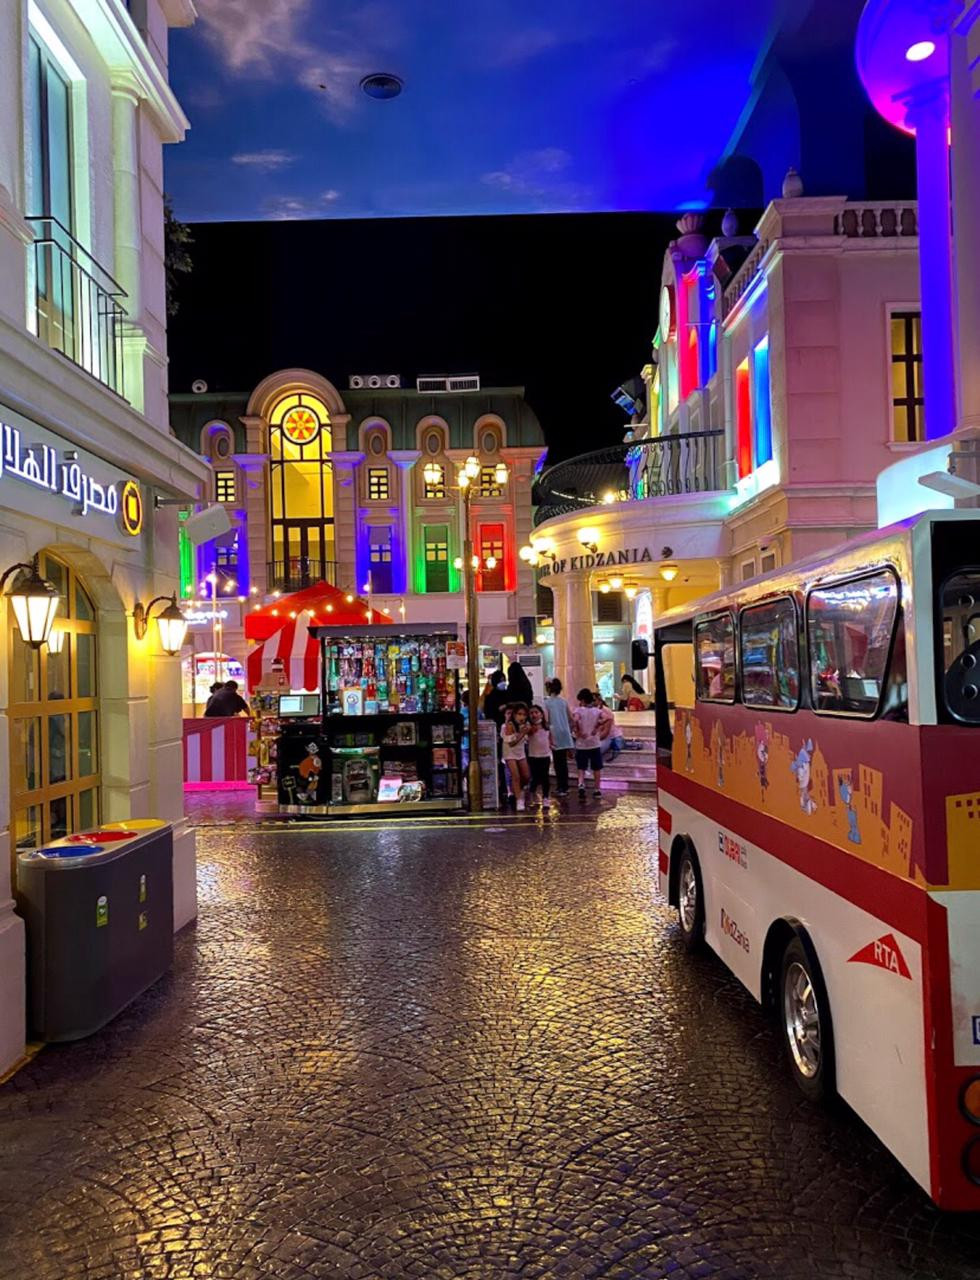 Hire a driver to visit Kidzania